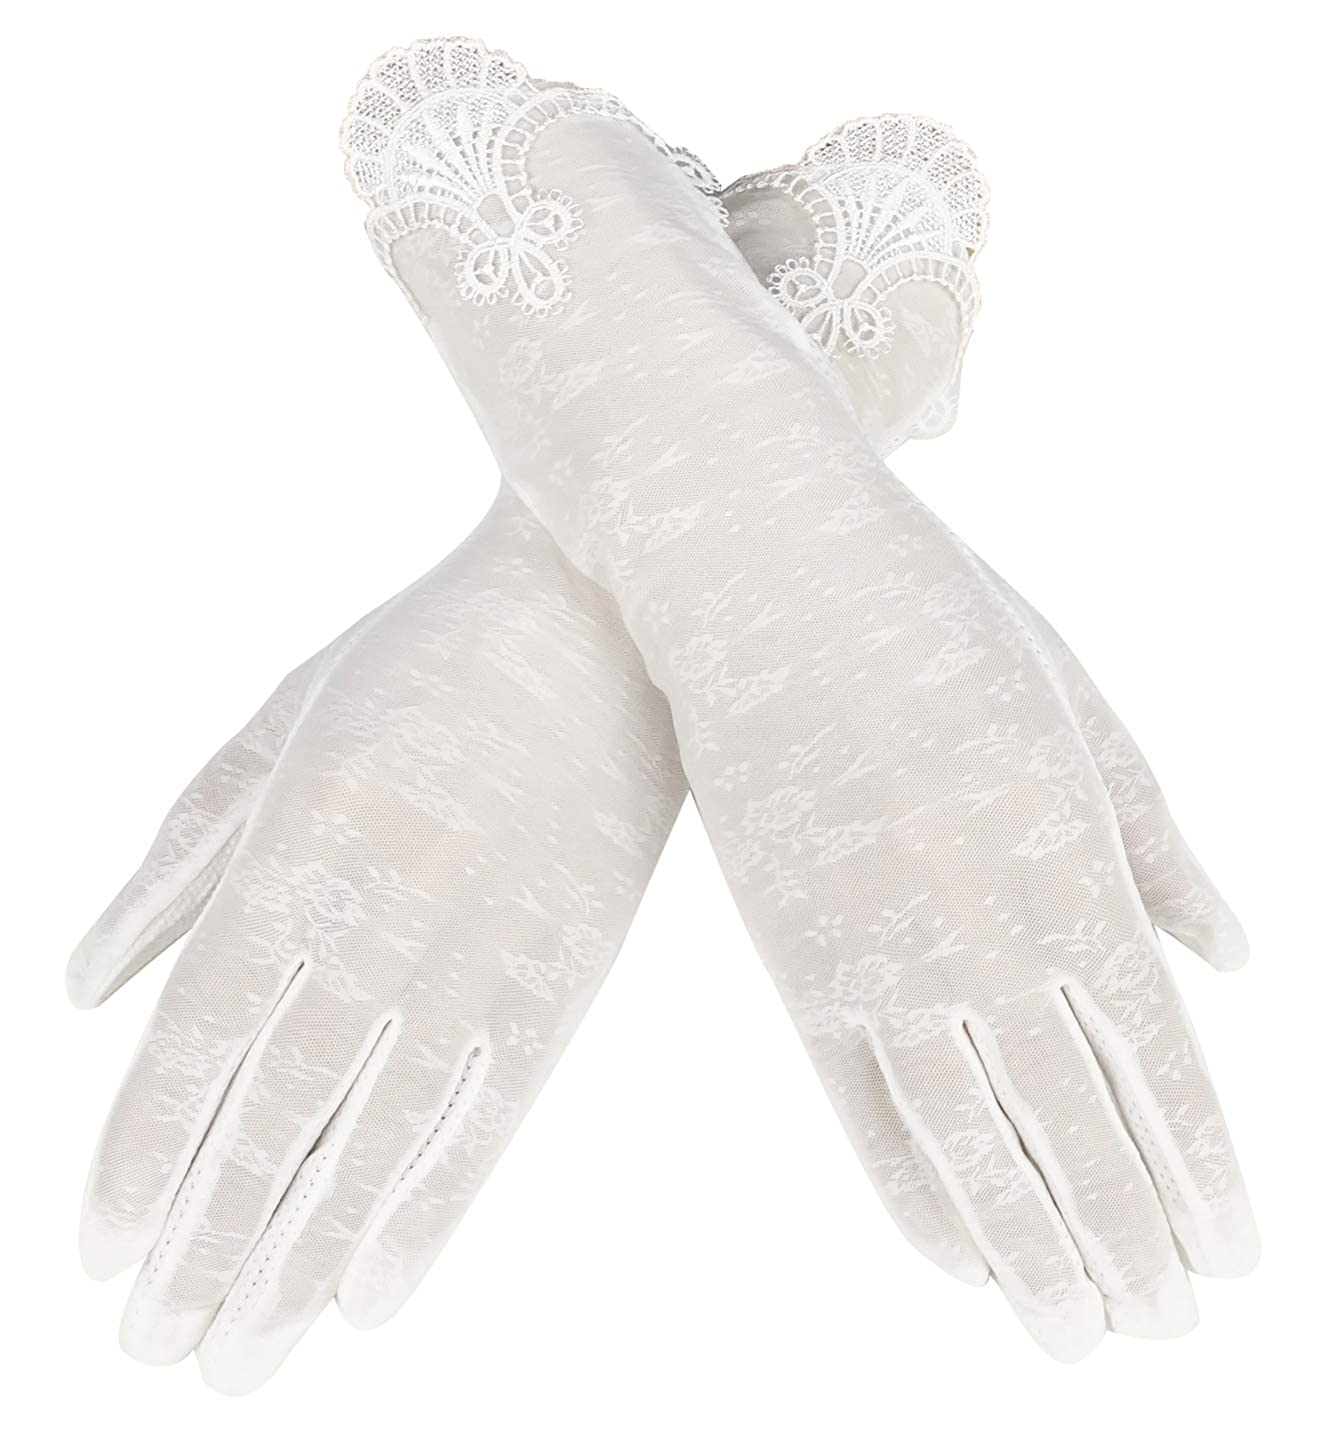 Vintage Style Gloves- Long, Wrist, Evening, Day, Leather, Lace Bienvenu Summer Women Lady Outdoor Uv Protection Gloves Mittens $10.99 AT vintagedancer.com